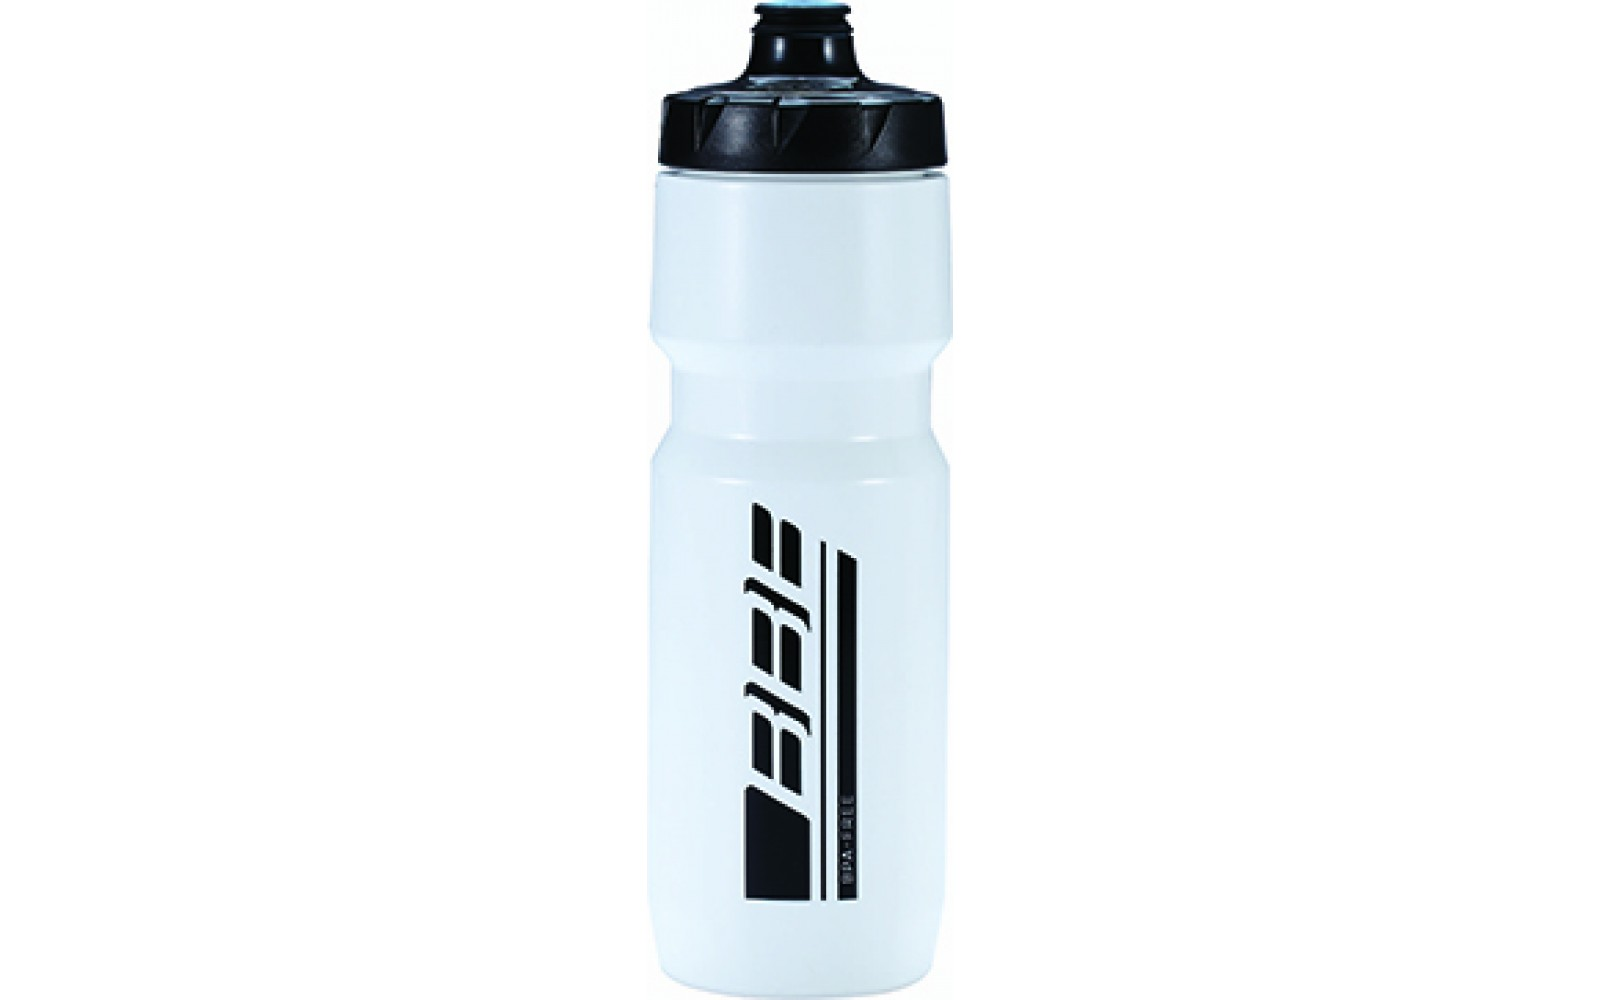 Фляга вело BBB 750ml. AutoTank XL белый